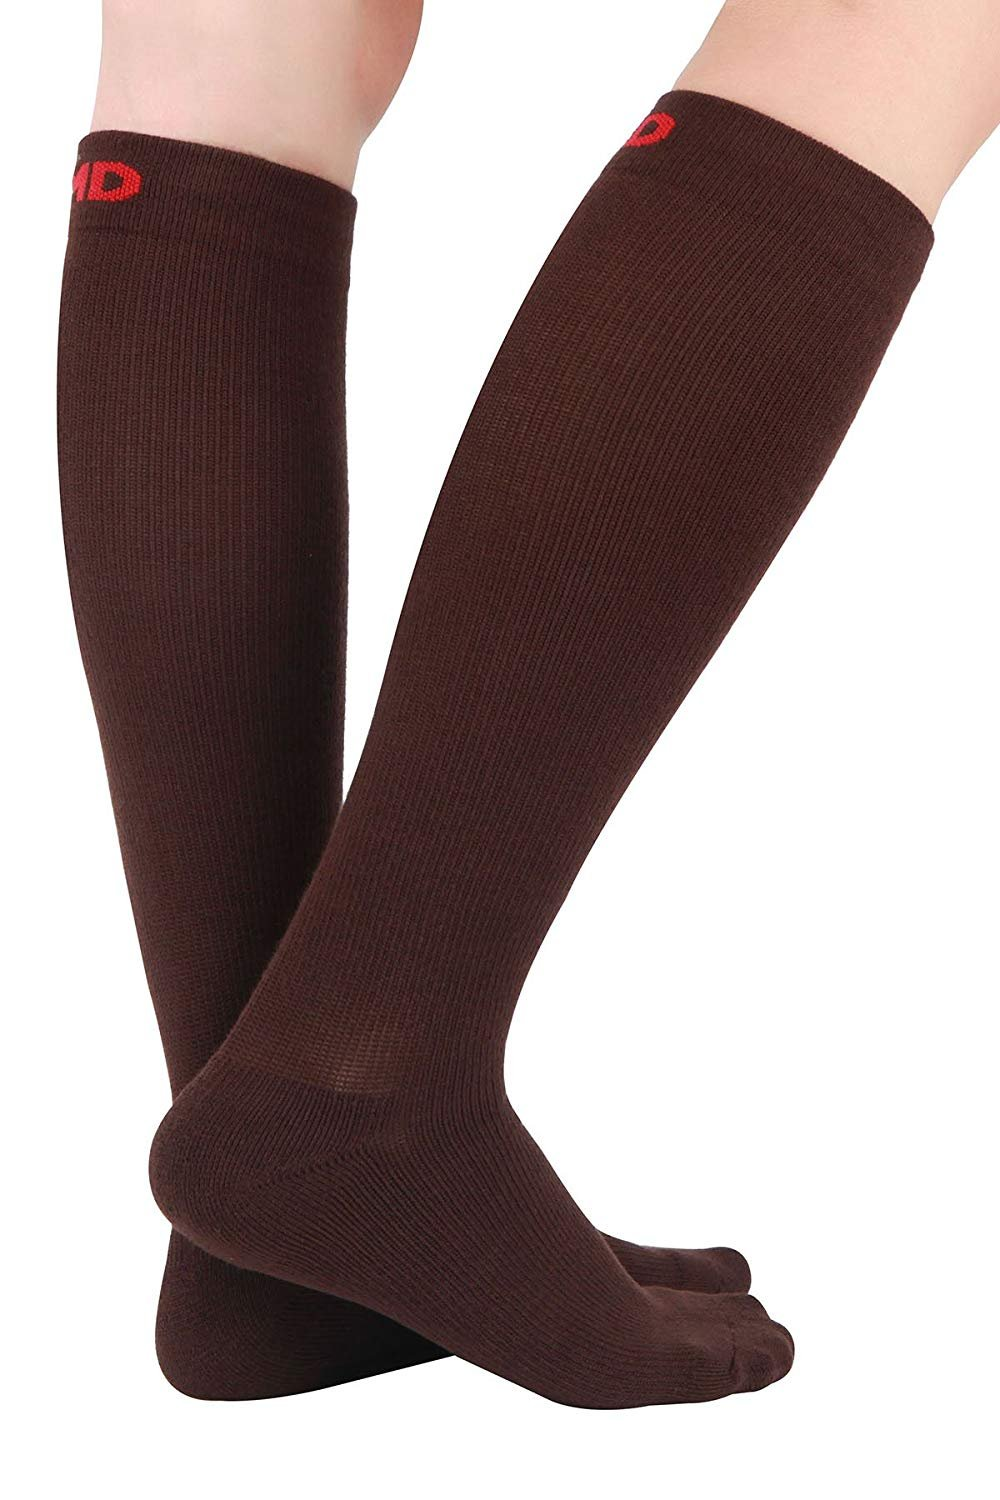 MD 3 Pairs Thick Unisex Moisture Wicking Bamboo Travel Compression Socks 8-15mmHg 13-15 Brown